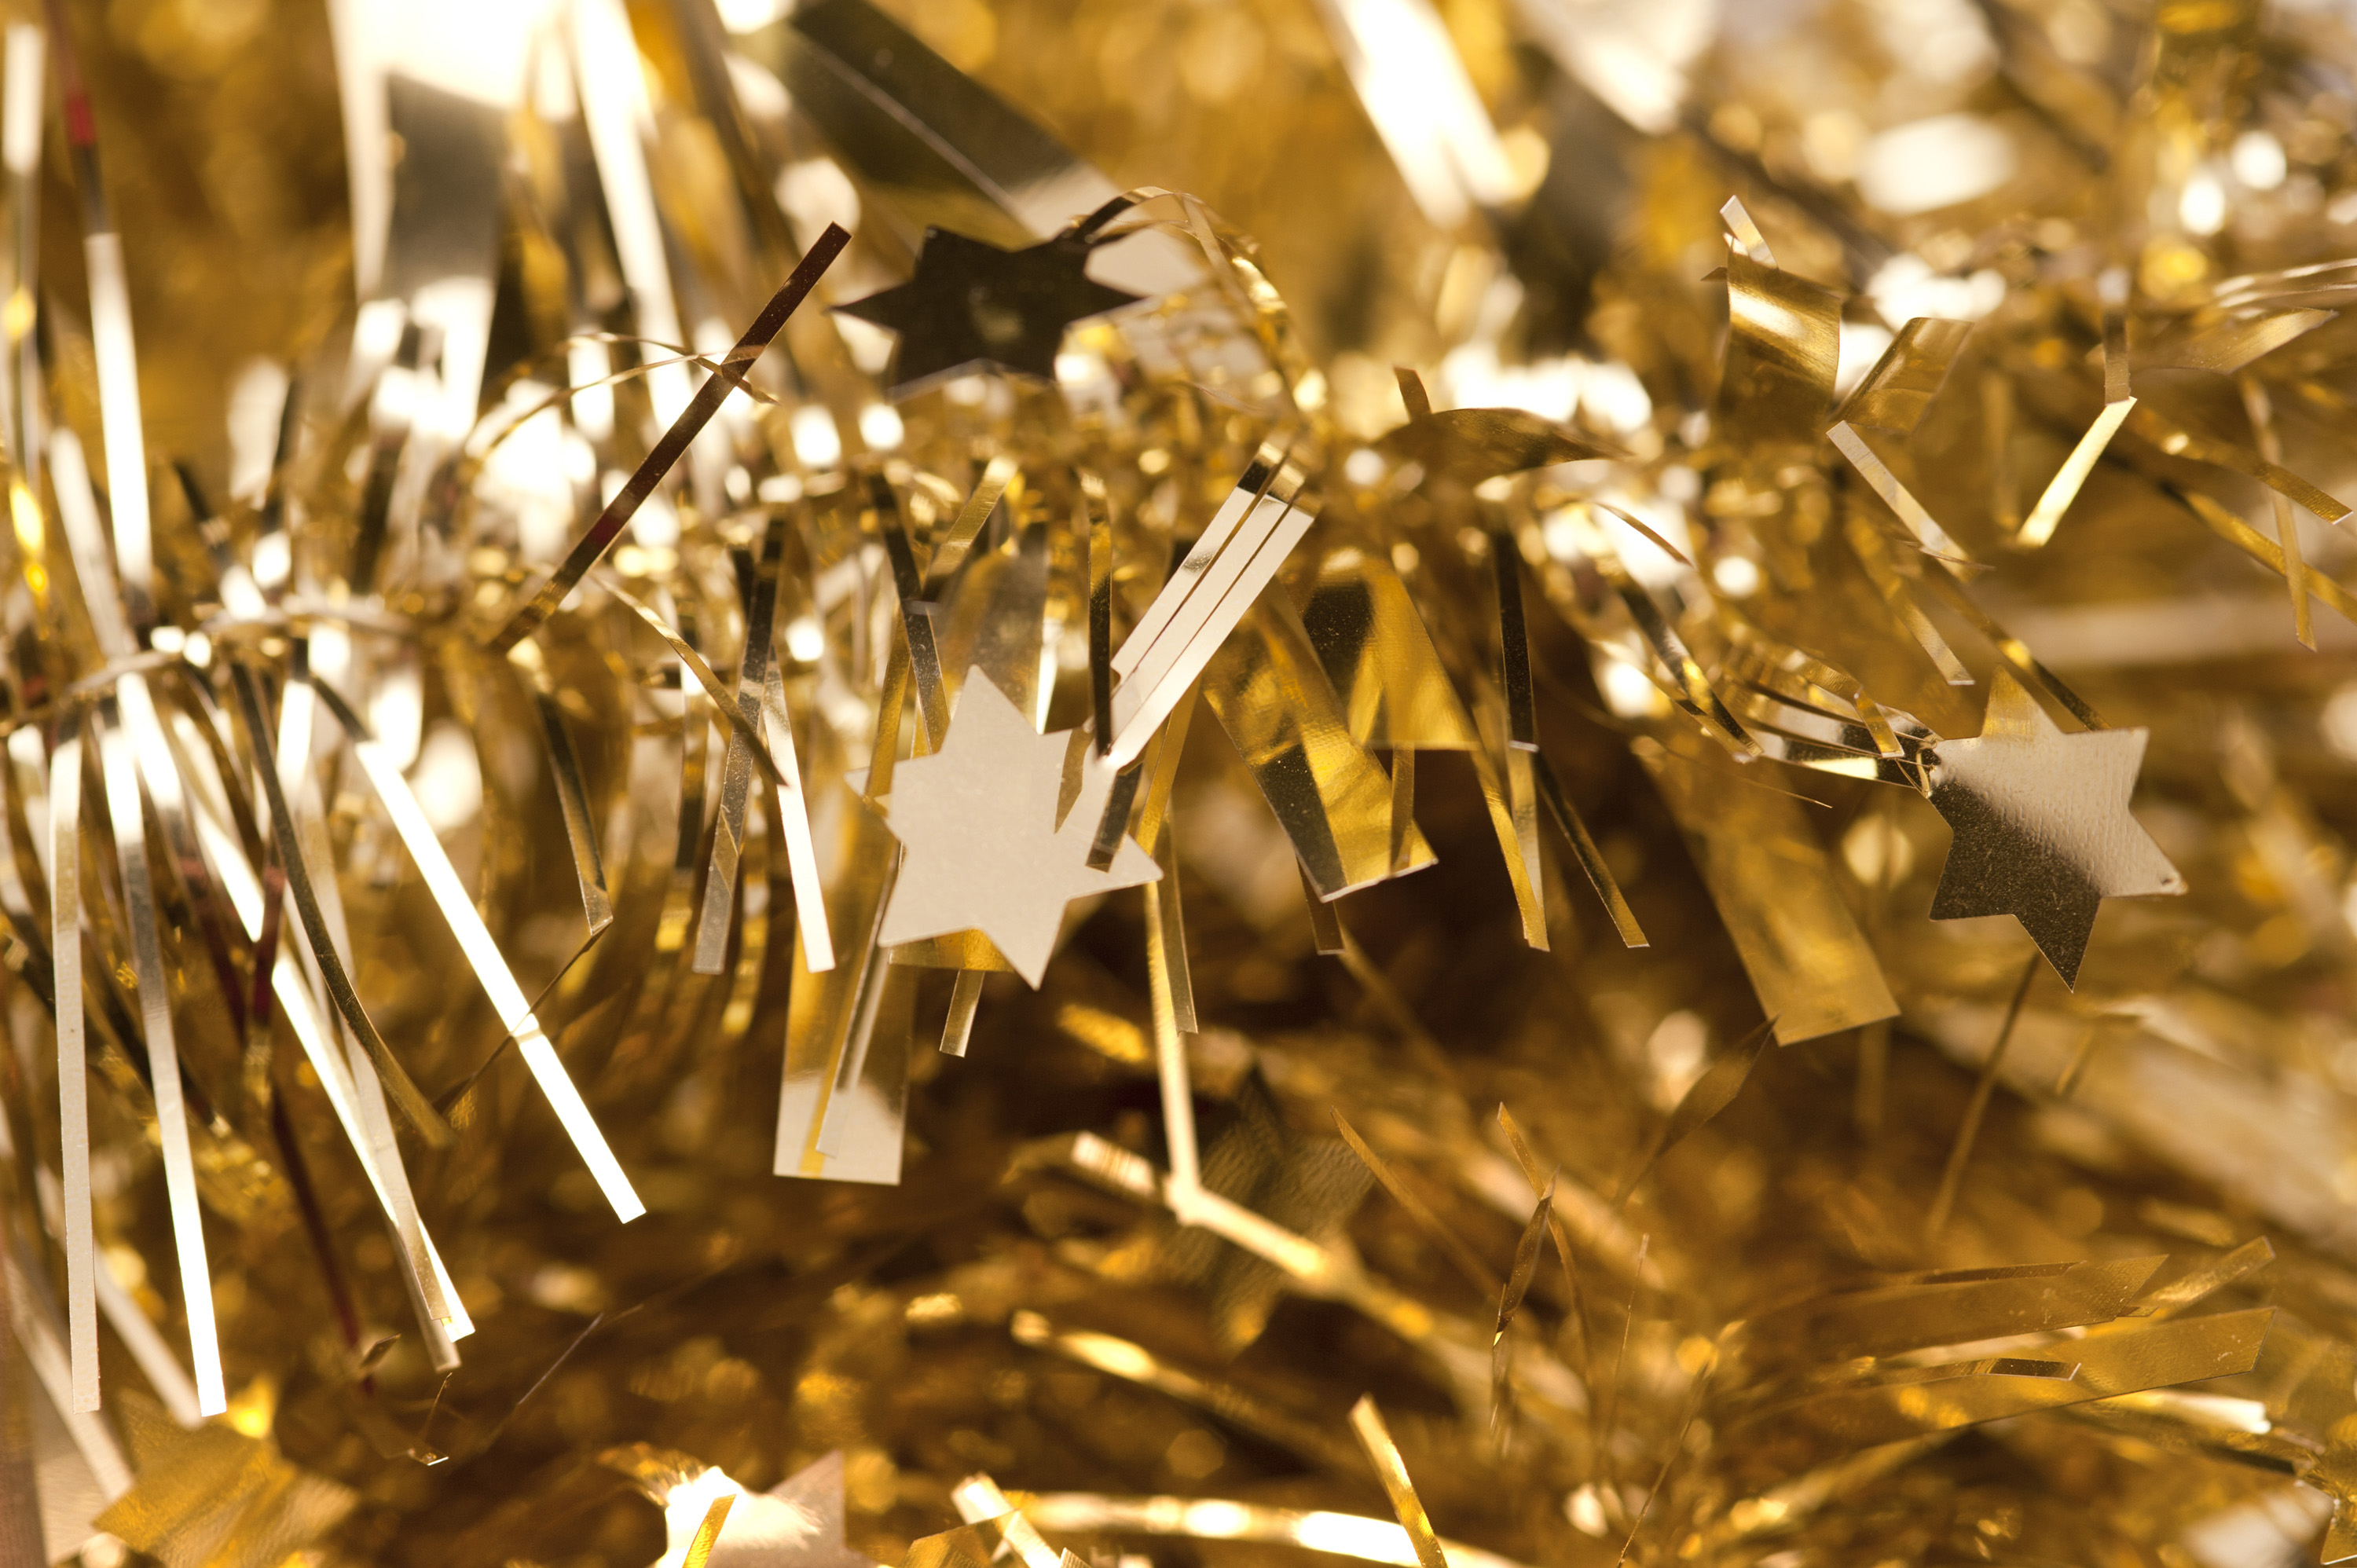 Glittering gold tinsel with little stars as a backdrop for your Christmas or festive greetings card or invitation